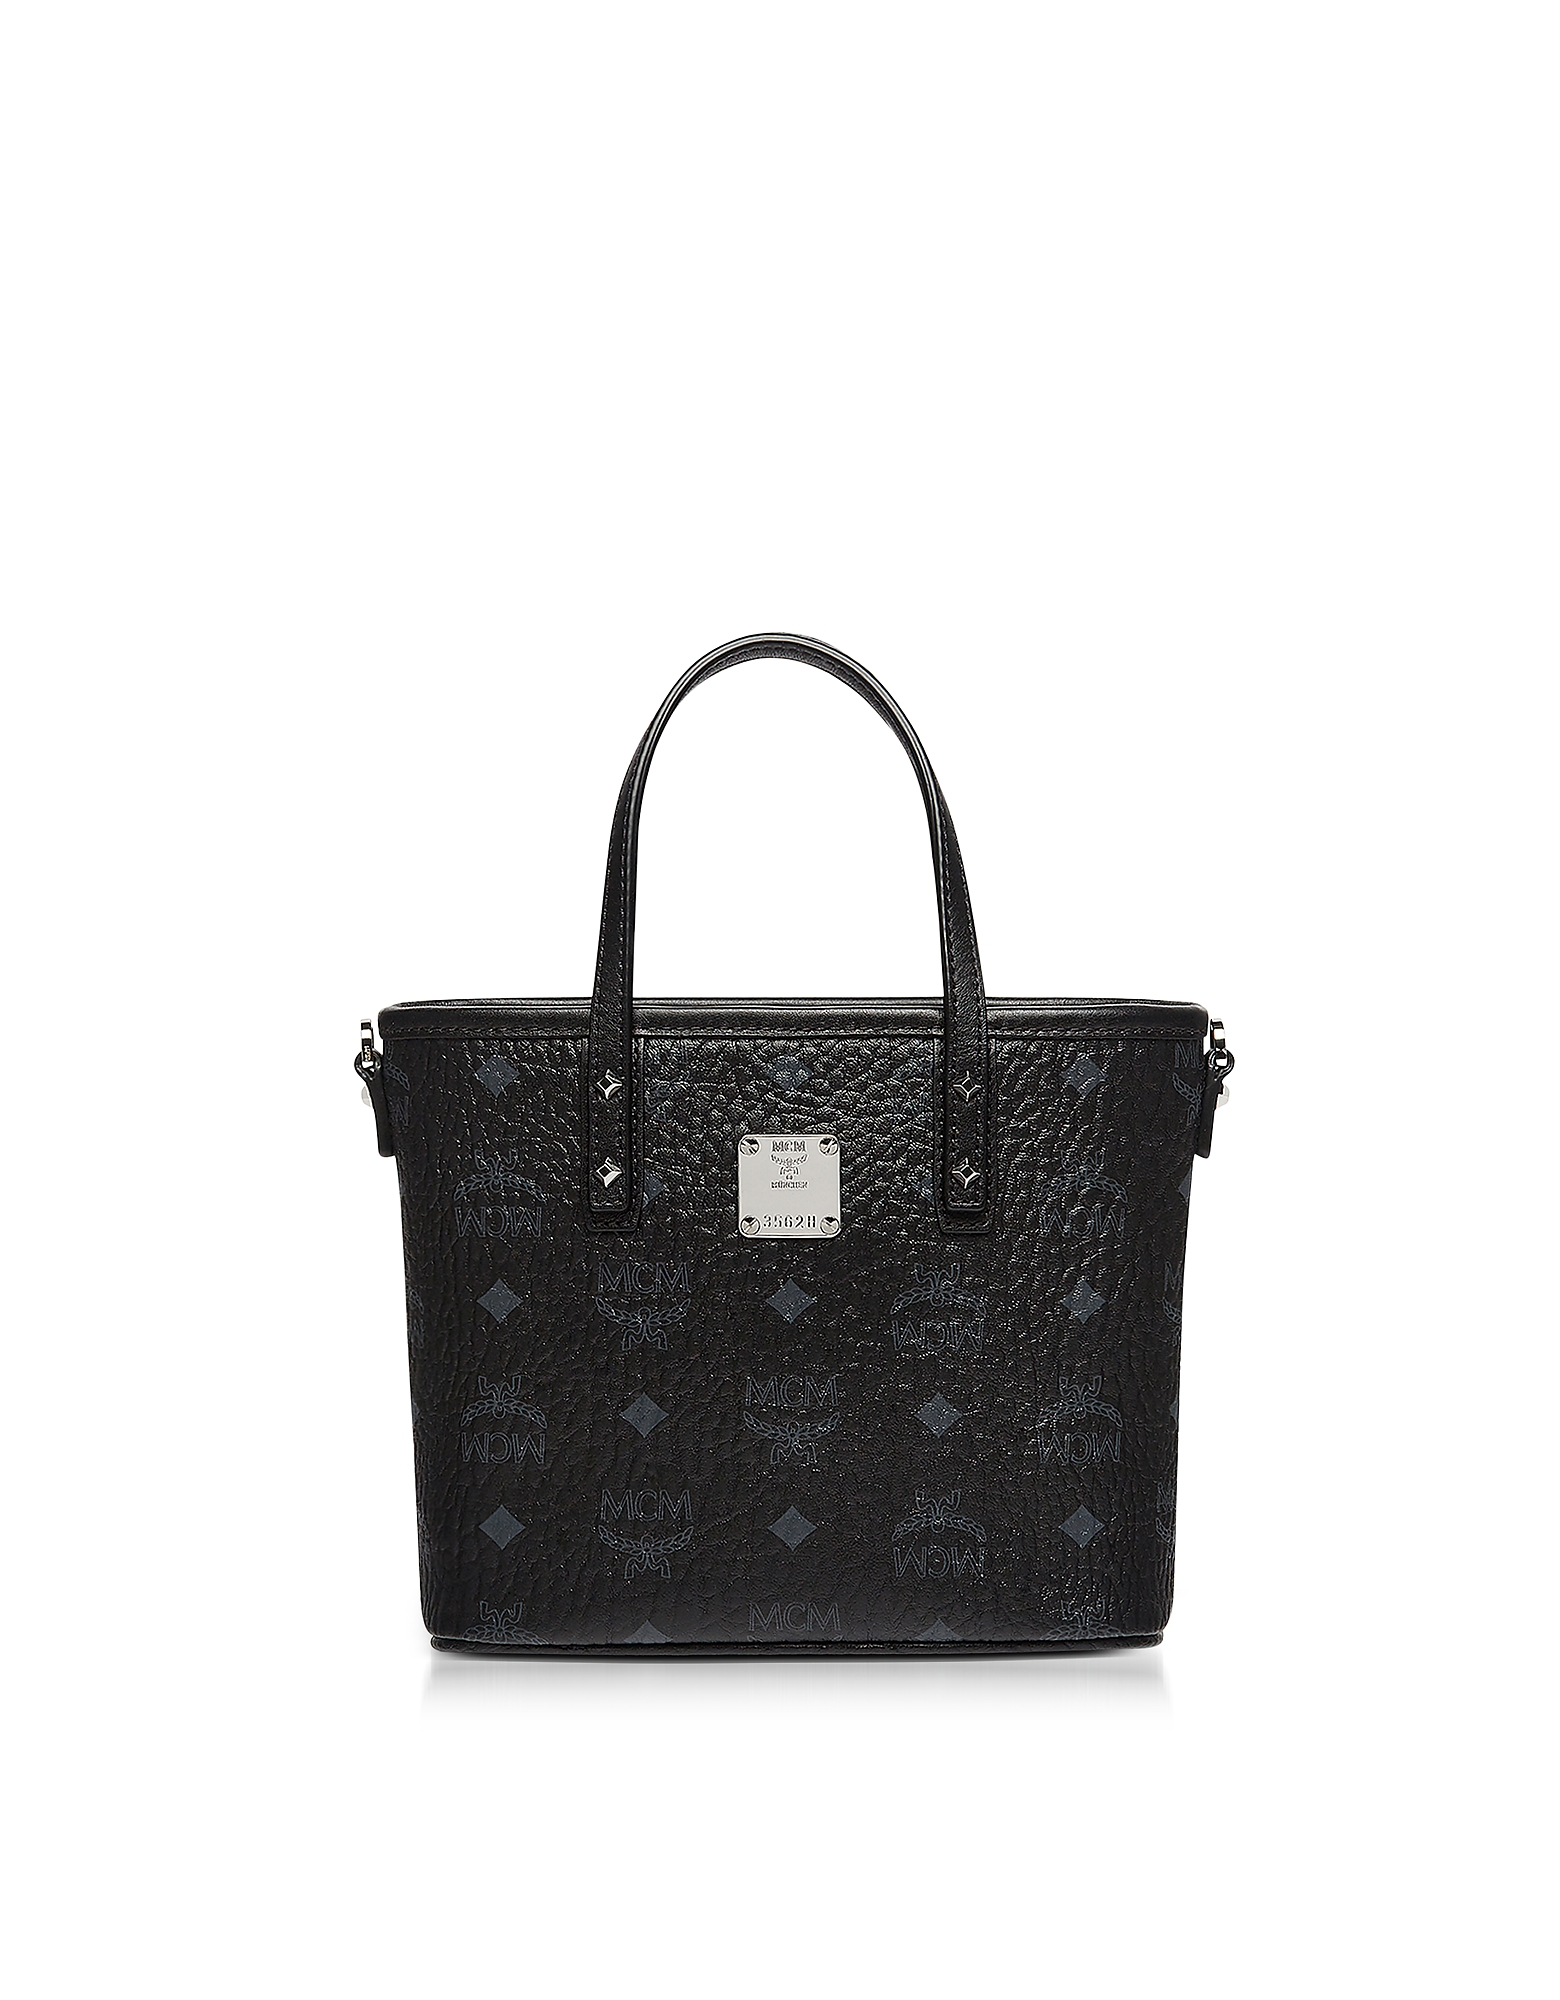 MCM Handbags, Mini Black Eco Leather Top Zip Shopping Bag